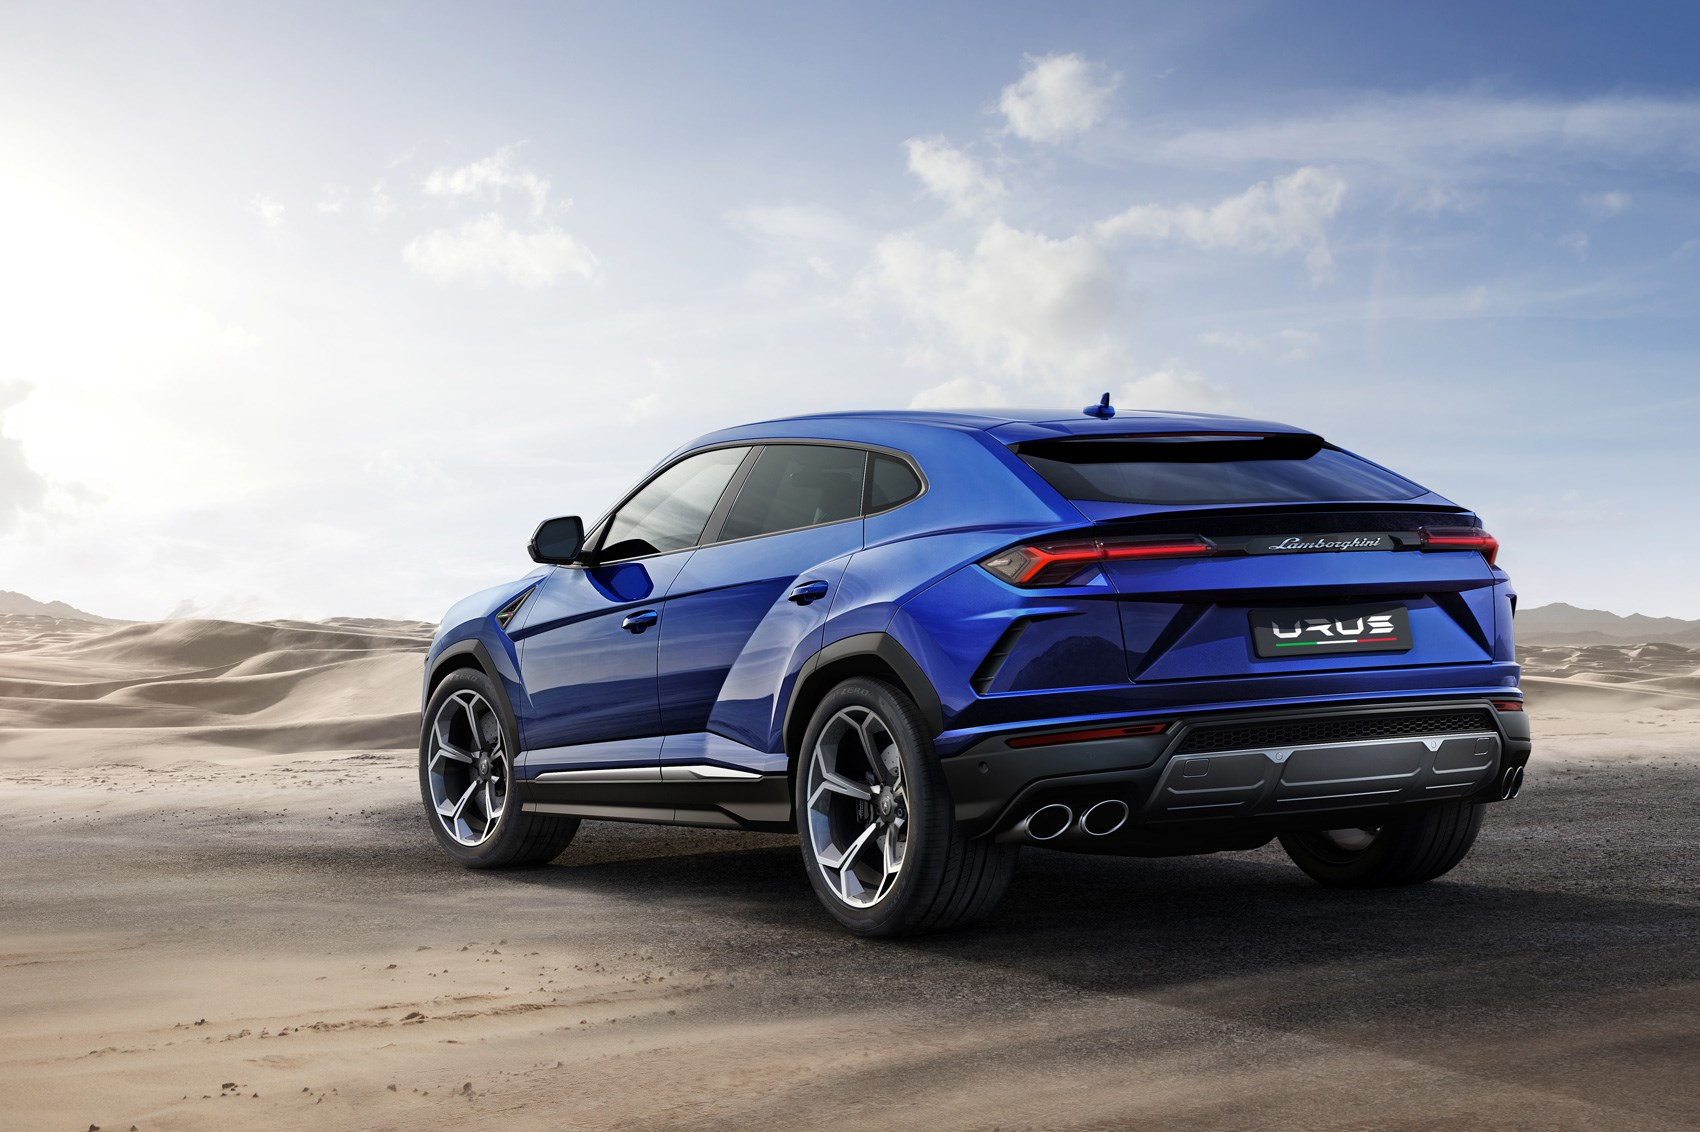 Lamborghini Urus Price In Usa >> Lamborghini Urus (2018) SUV: everything you need to know by CAR Magazine